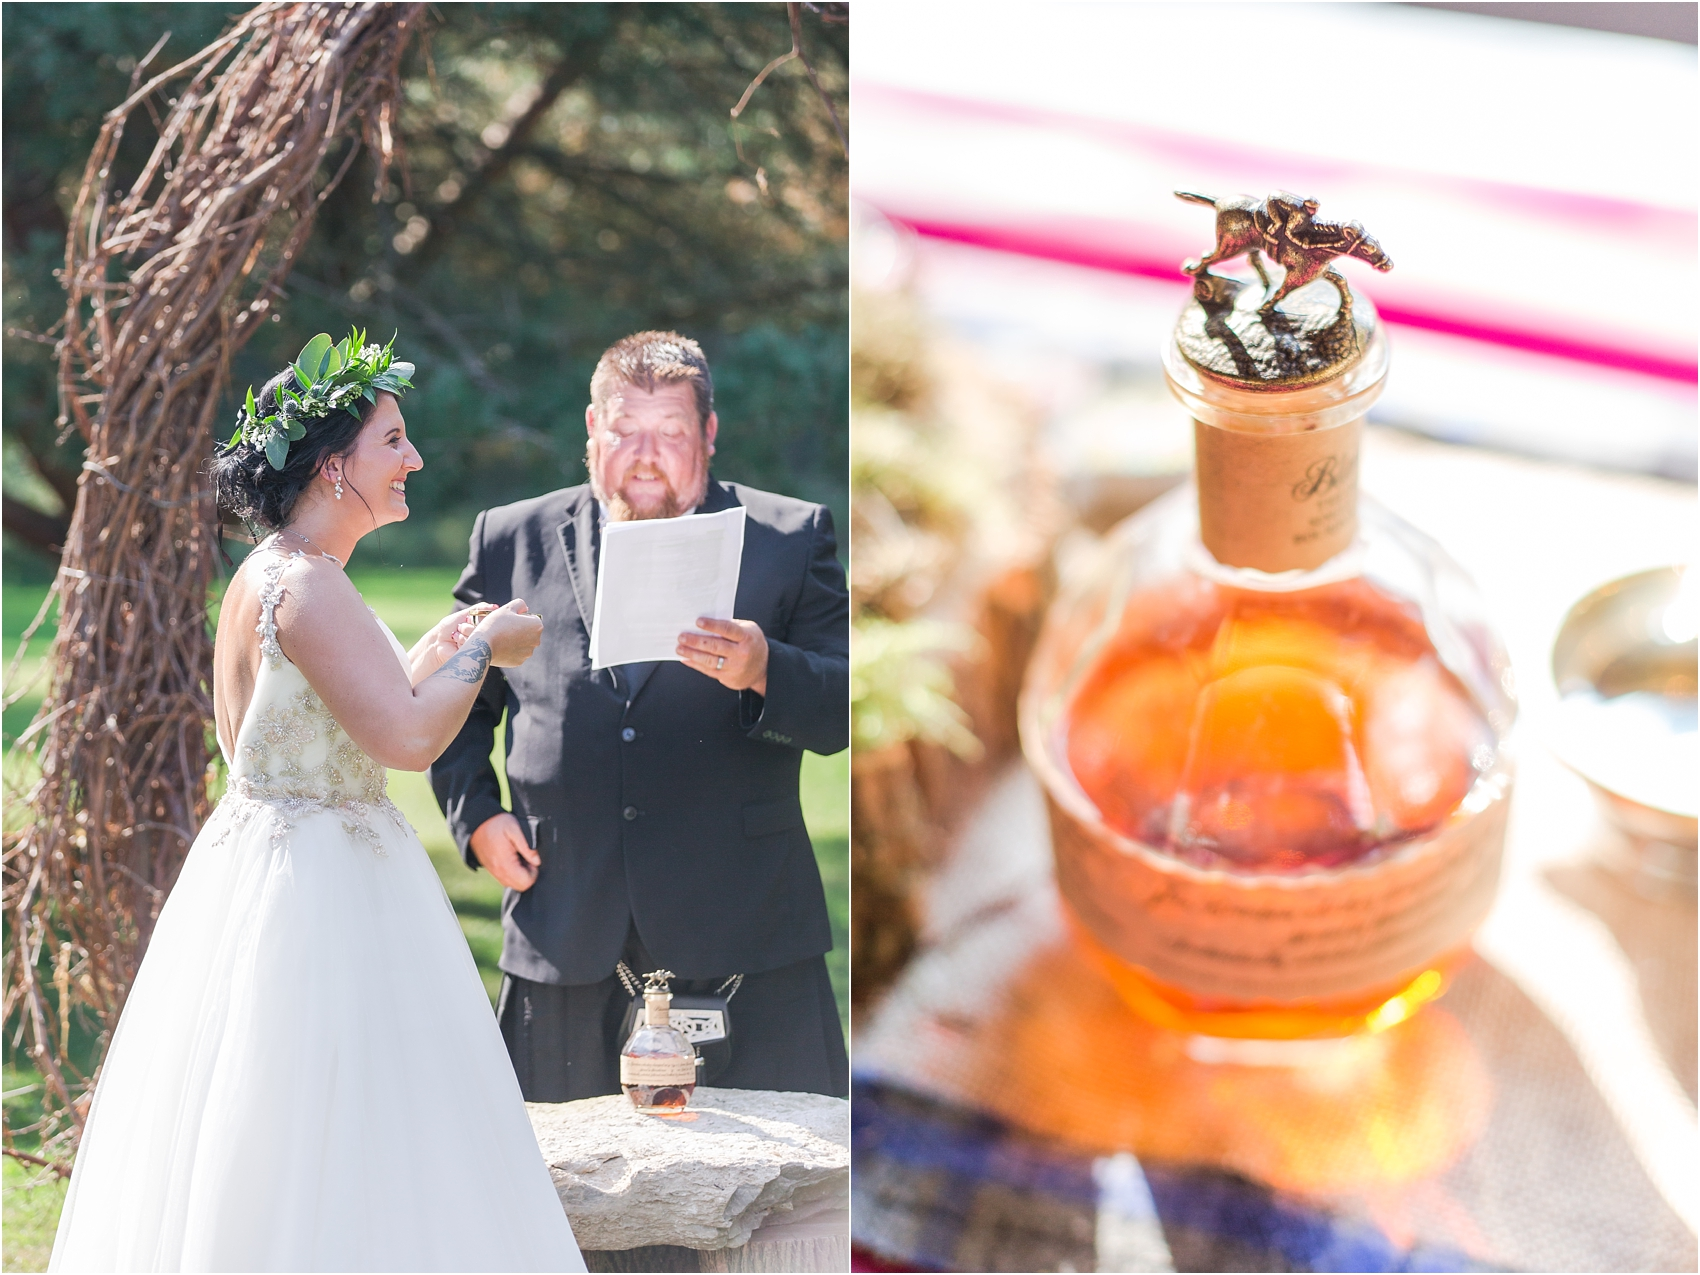 scottish-inspired-wedding-photos-in-the-country-in-port-sanilac-michigan-by-courtney-carolyn-photography_0027.jpg